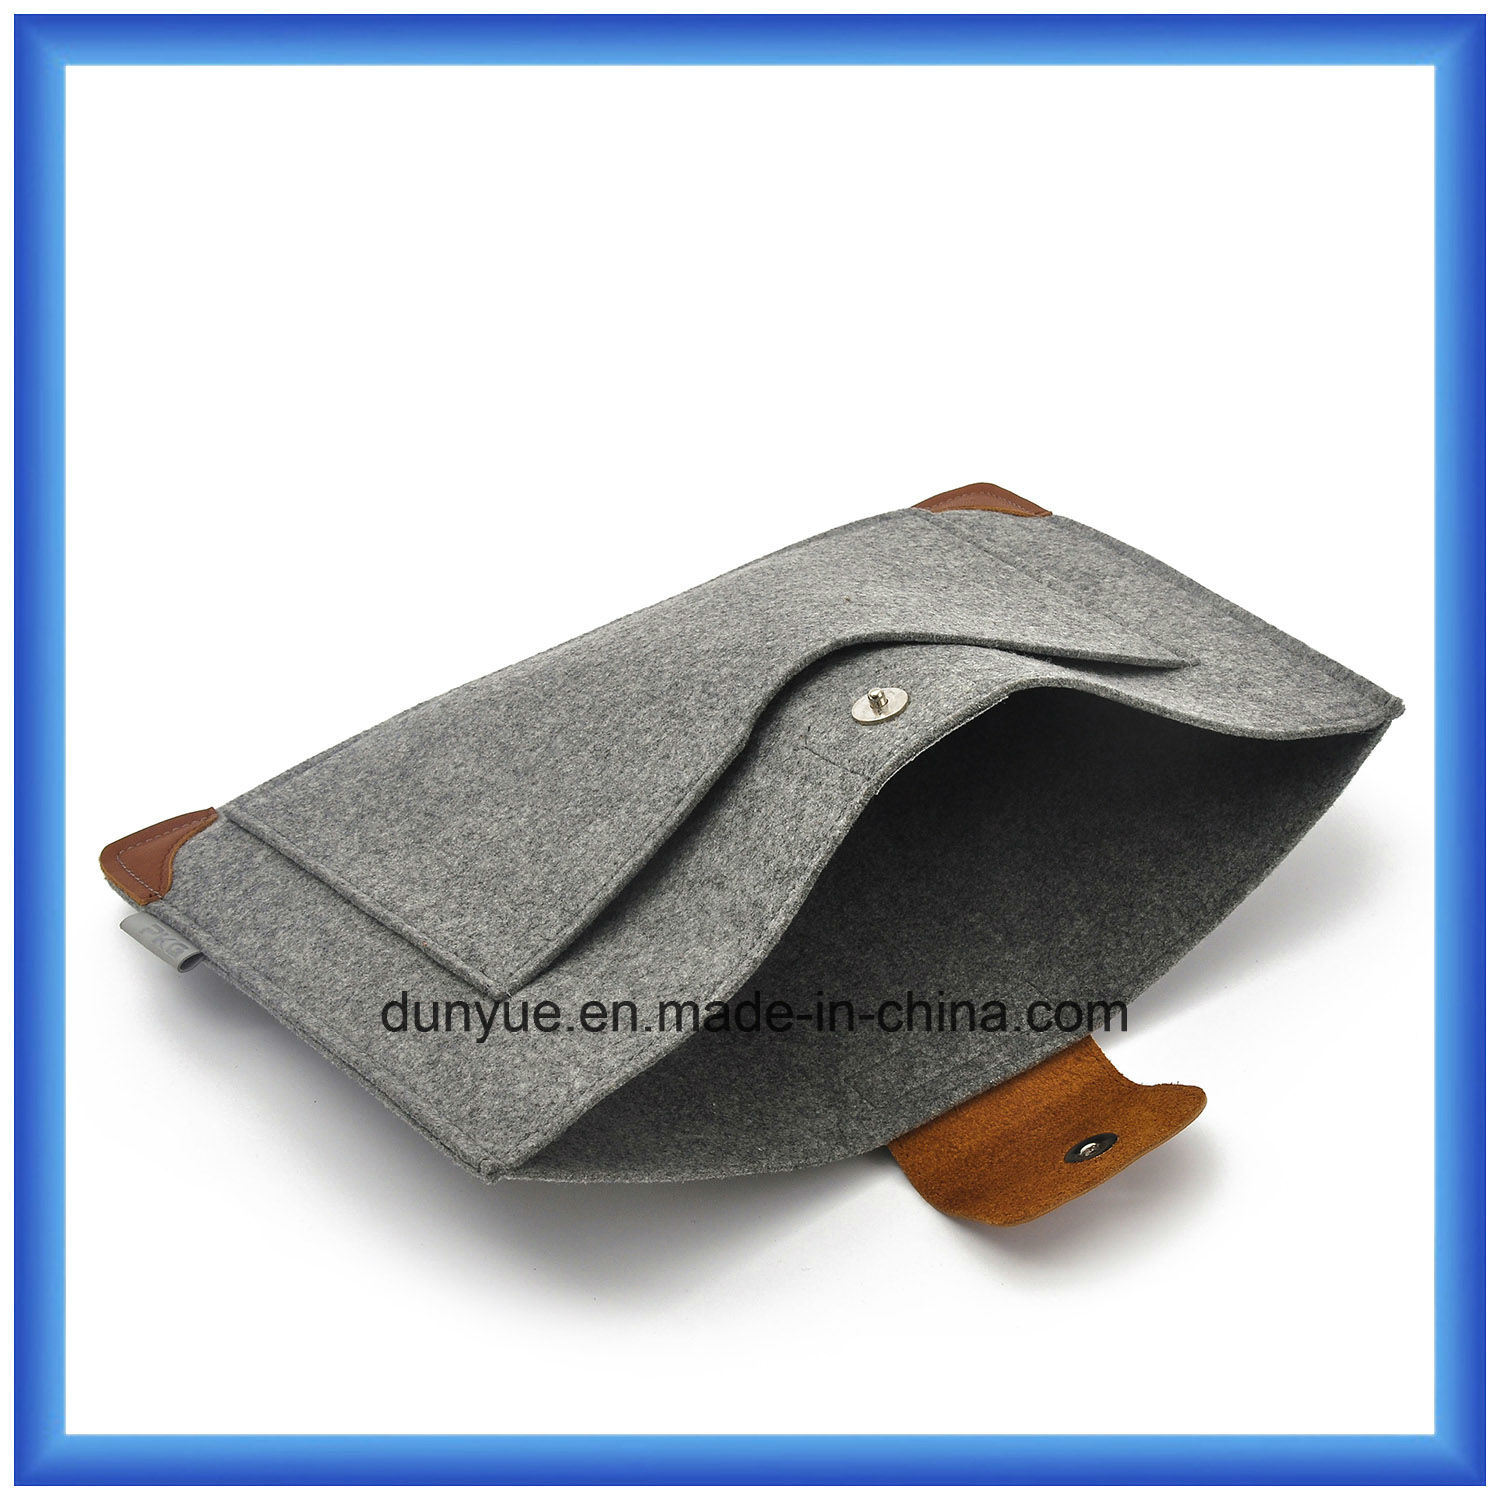 """New Promotional Wool Felt+ Genuine Leather Laptop Sleeve with Mouse Bag for Apple MacBook Air PRO, PRO Retina 13.3"""""""